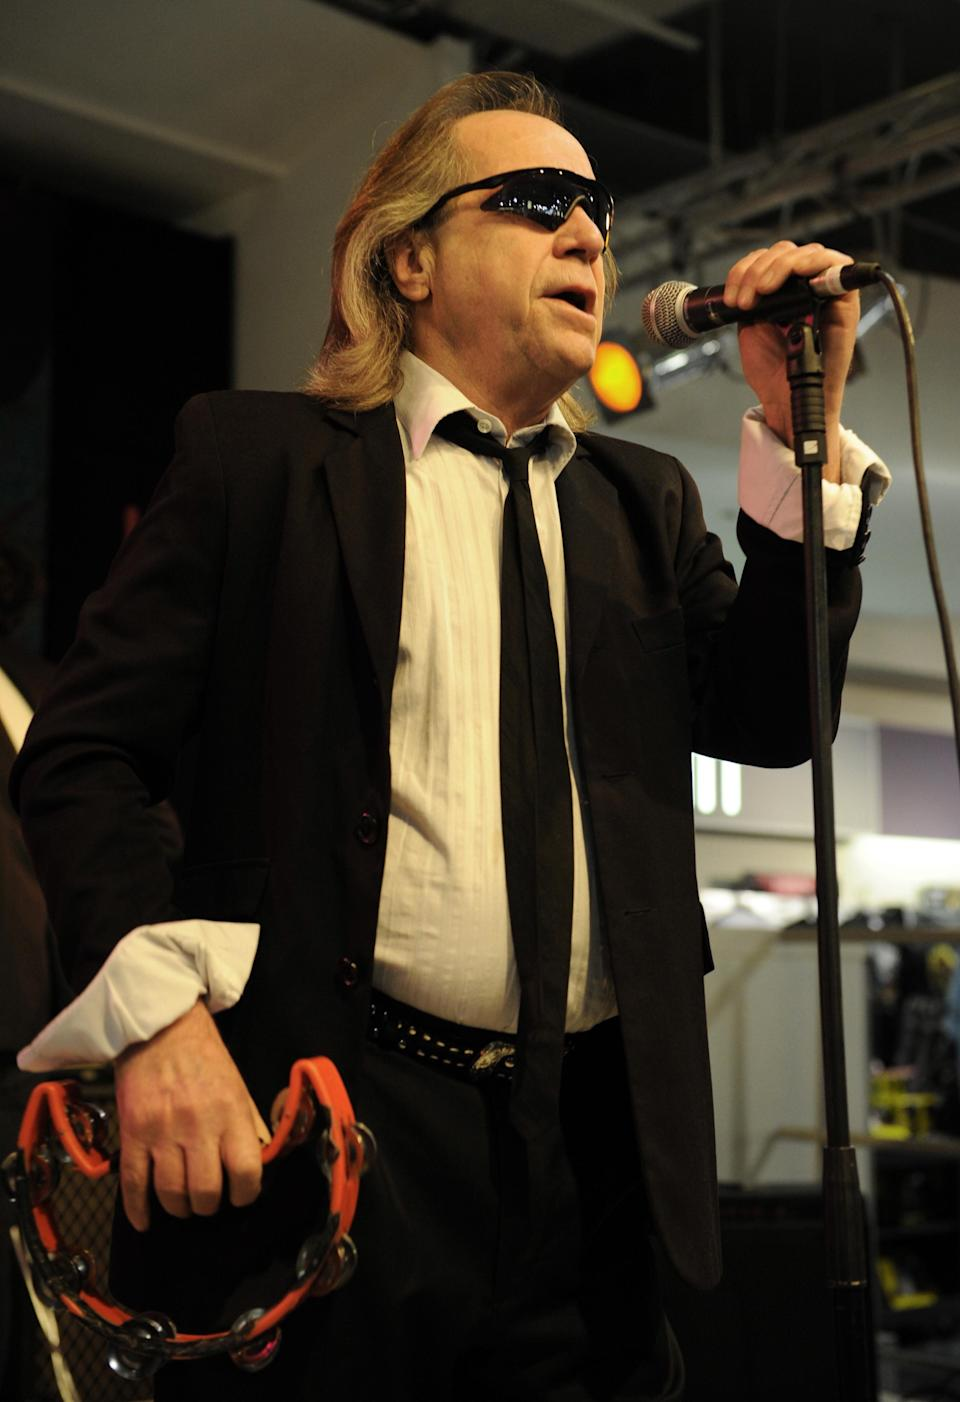 <strong>Phil May (1944 – 2020)<br /></strong><br />The pioneering rock singer was the frontman of the Pretty Things, whose hits included Don't Bring Me Down. He died after suffering complications from hip surgery.